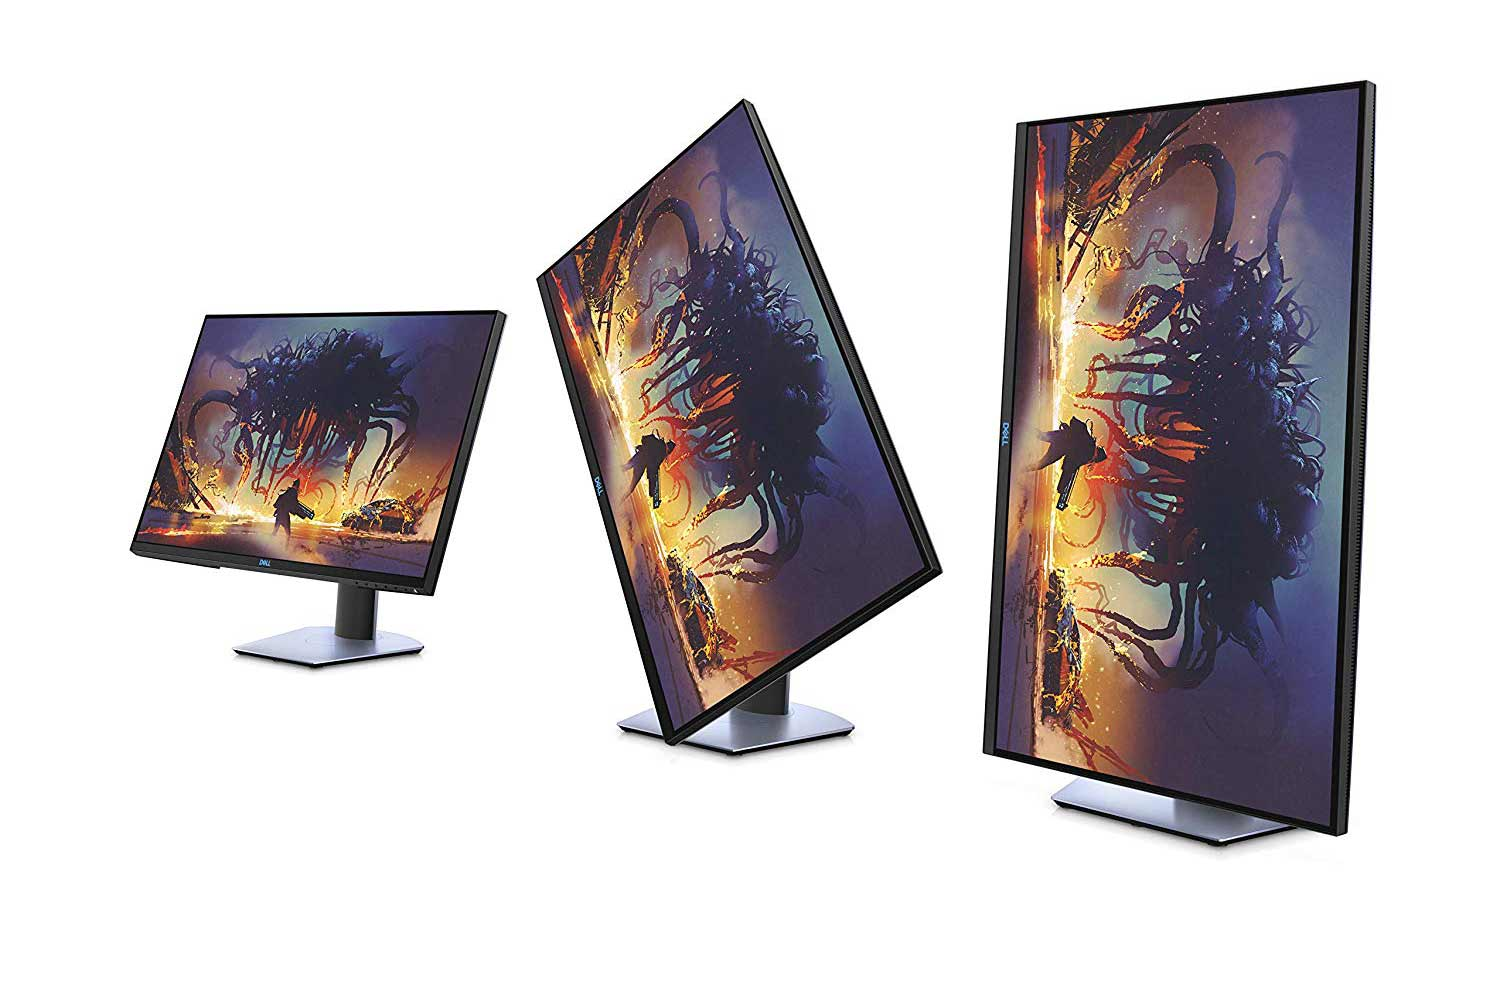 Dell rotating gaming monitor.